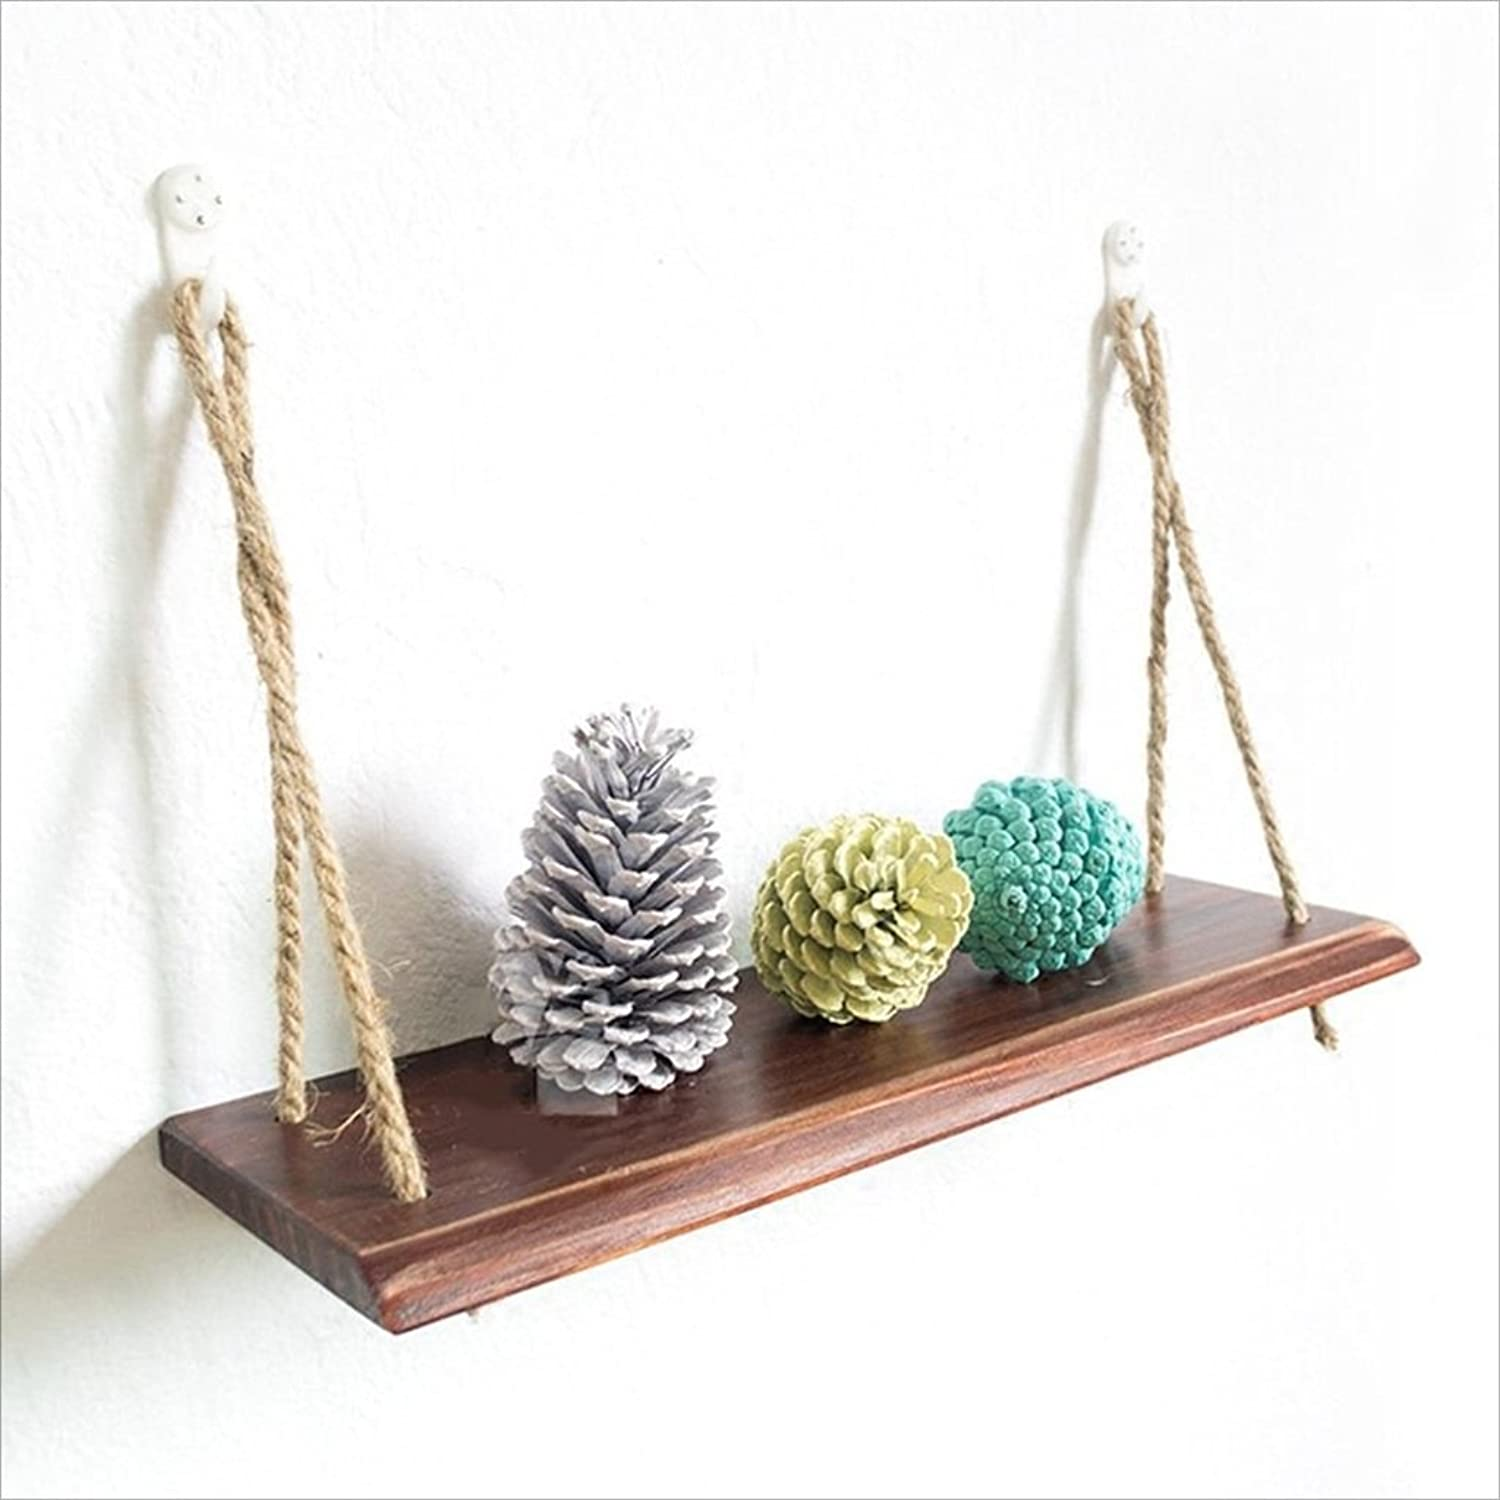 Decorative Accessories Solid Wood Racks Wall Shelf with Hemp Rope Shelves Wall Hanging Living Room Bookshelf Storage Rack Wall-Mounted Clapboard Wall Decorations Design Floating Shelves